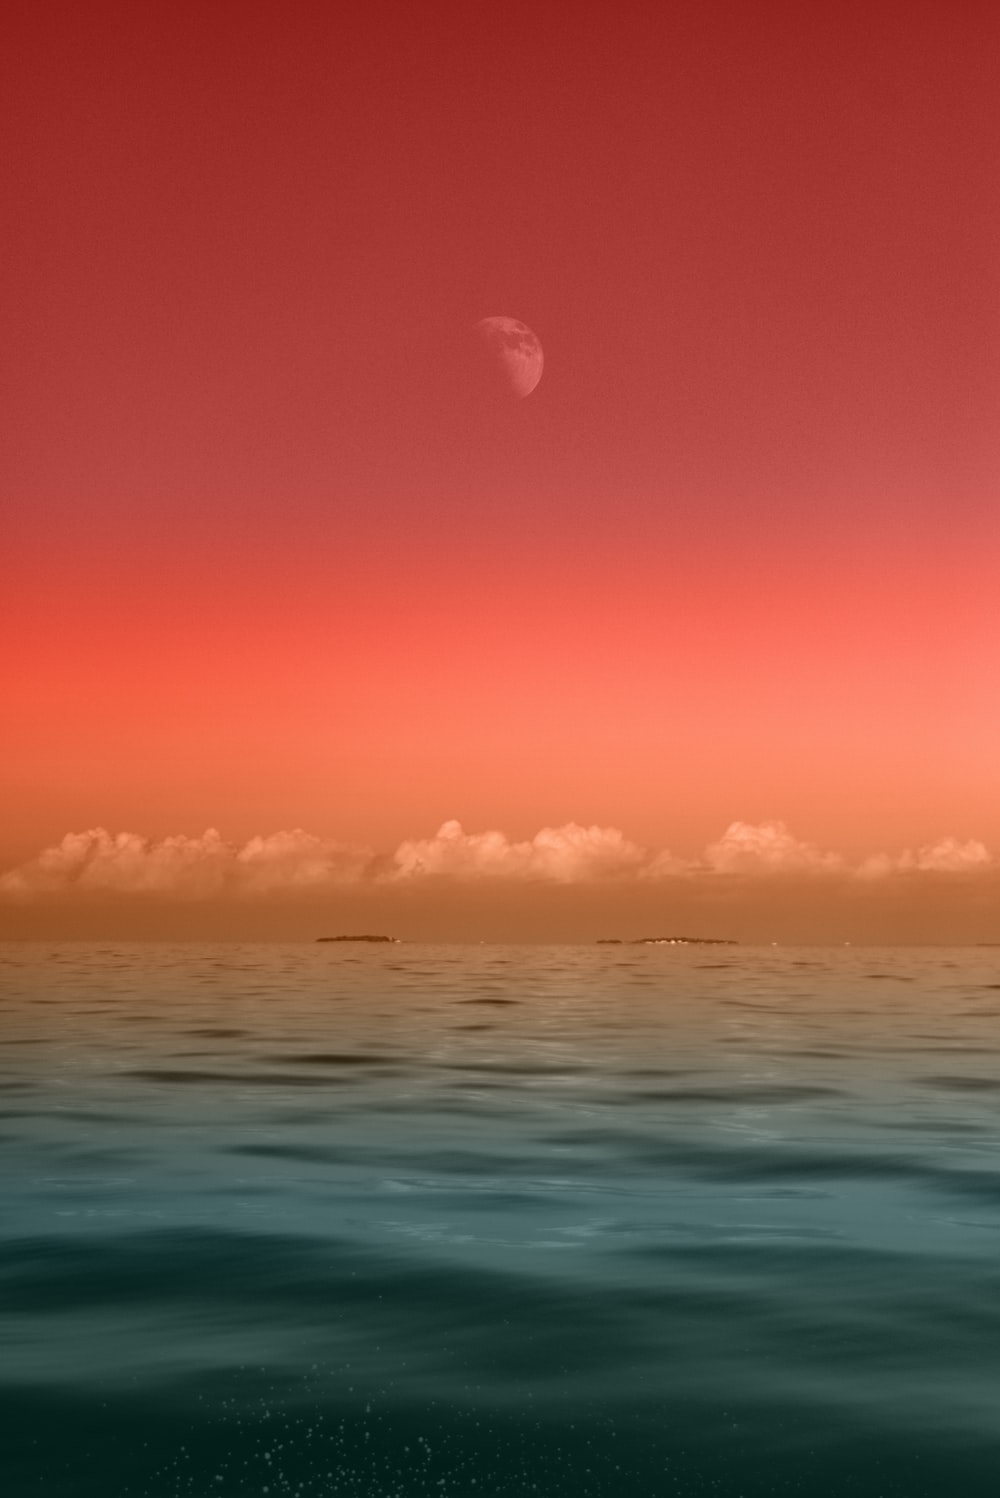 seascape photography of sea under half-moon